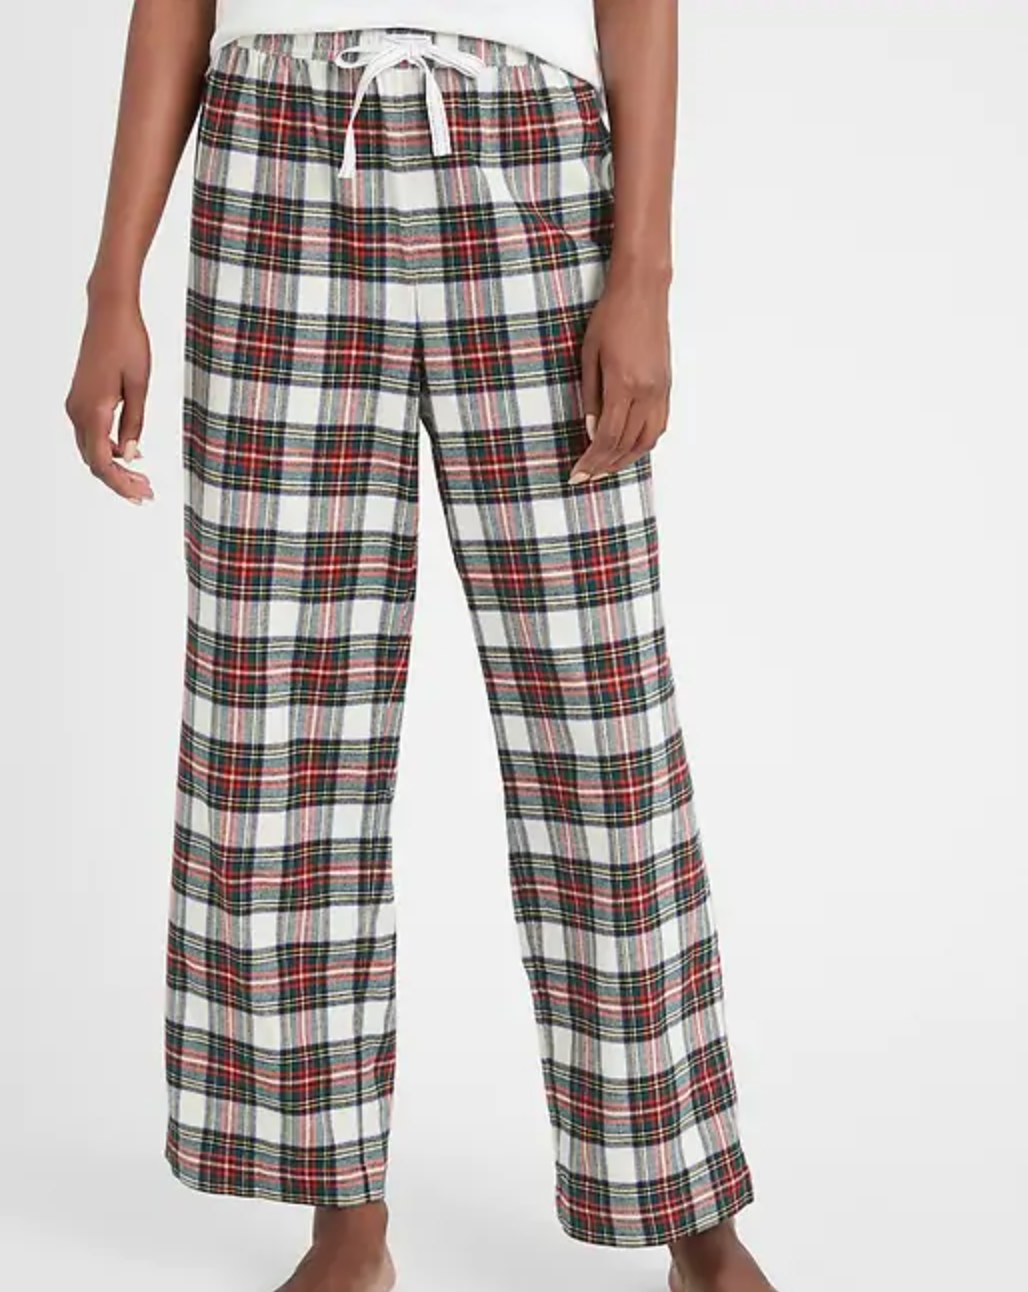 The flannel pajama bottoms in holiday plaid